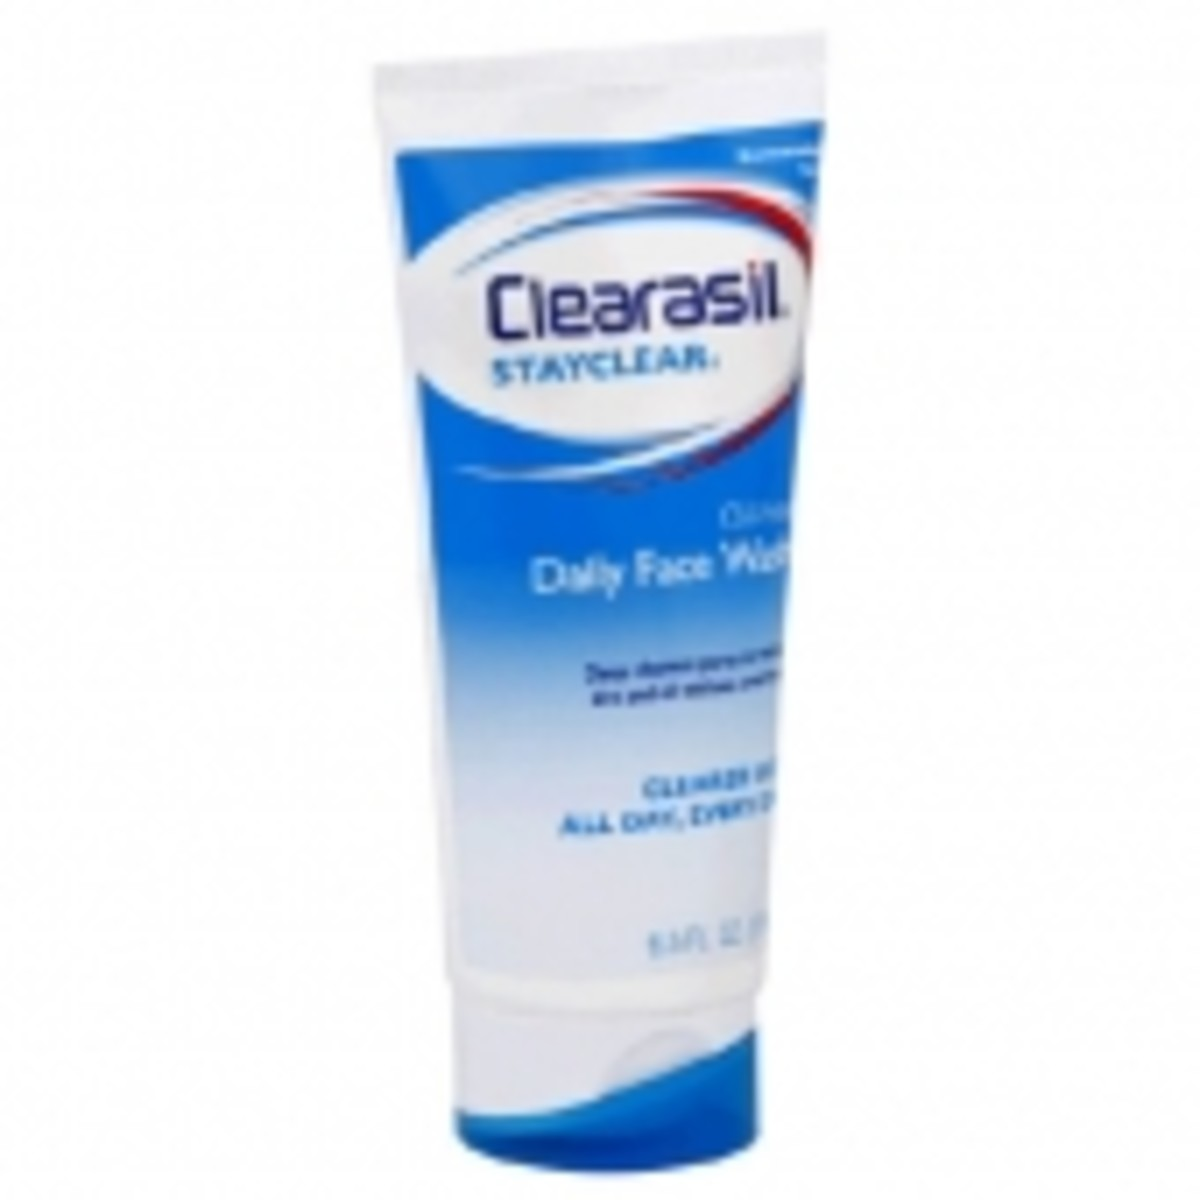 clearasil-stayclear-oil-free-daily-face-wash-review